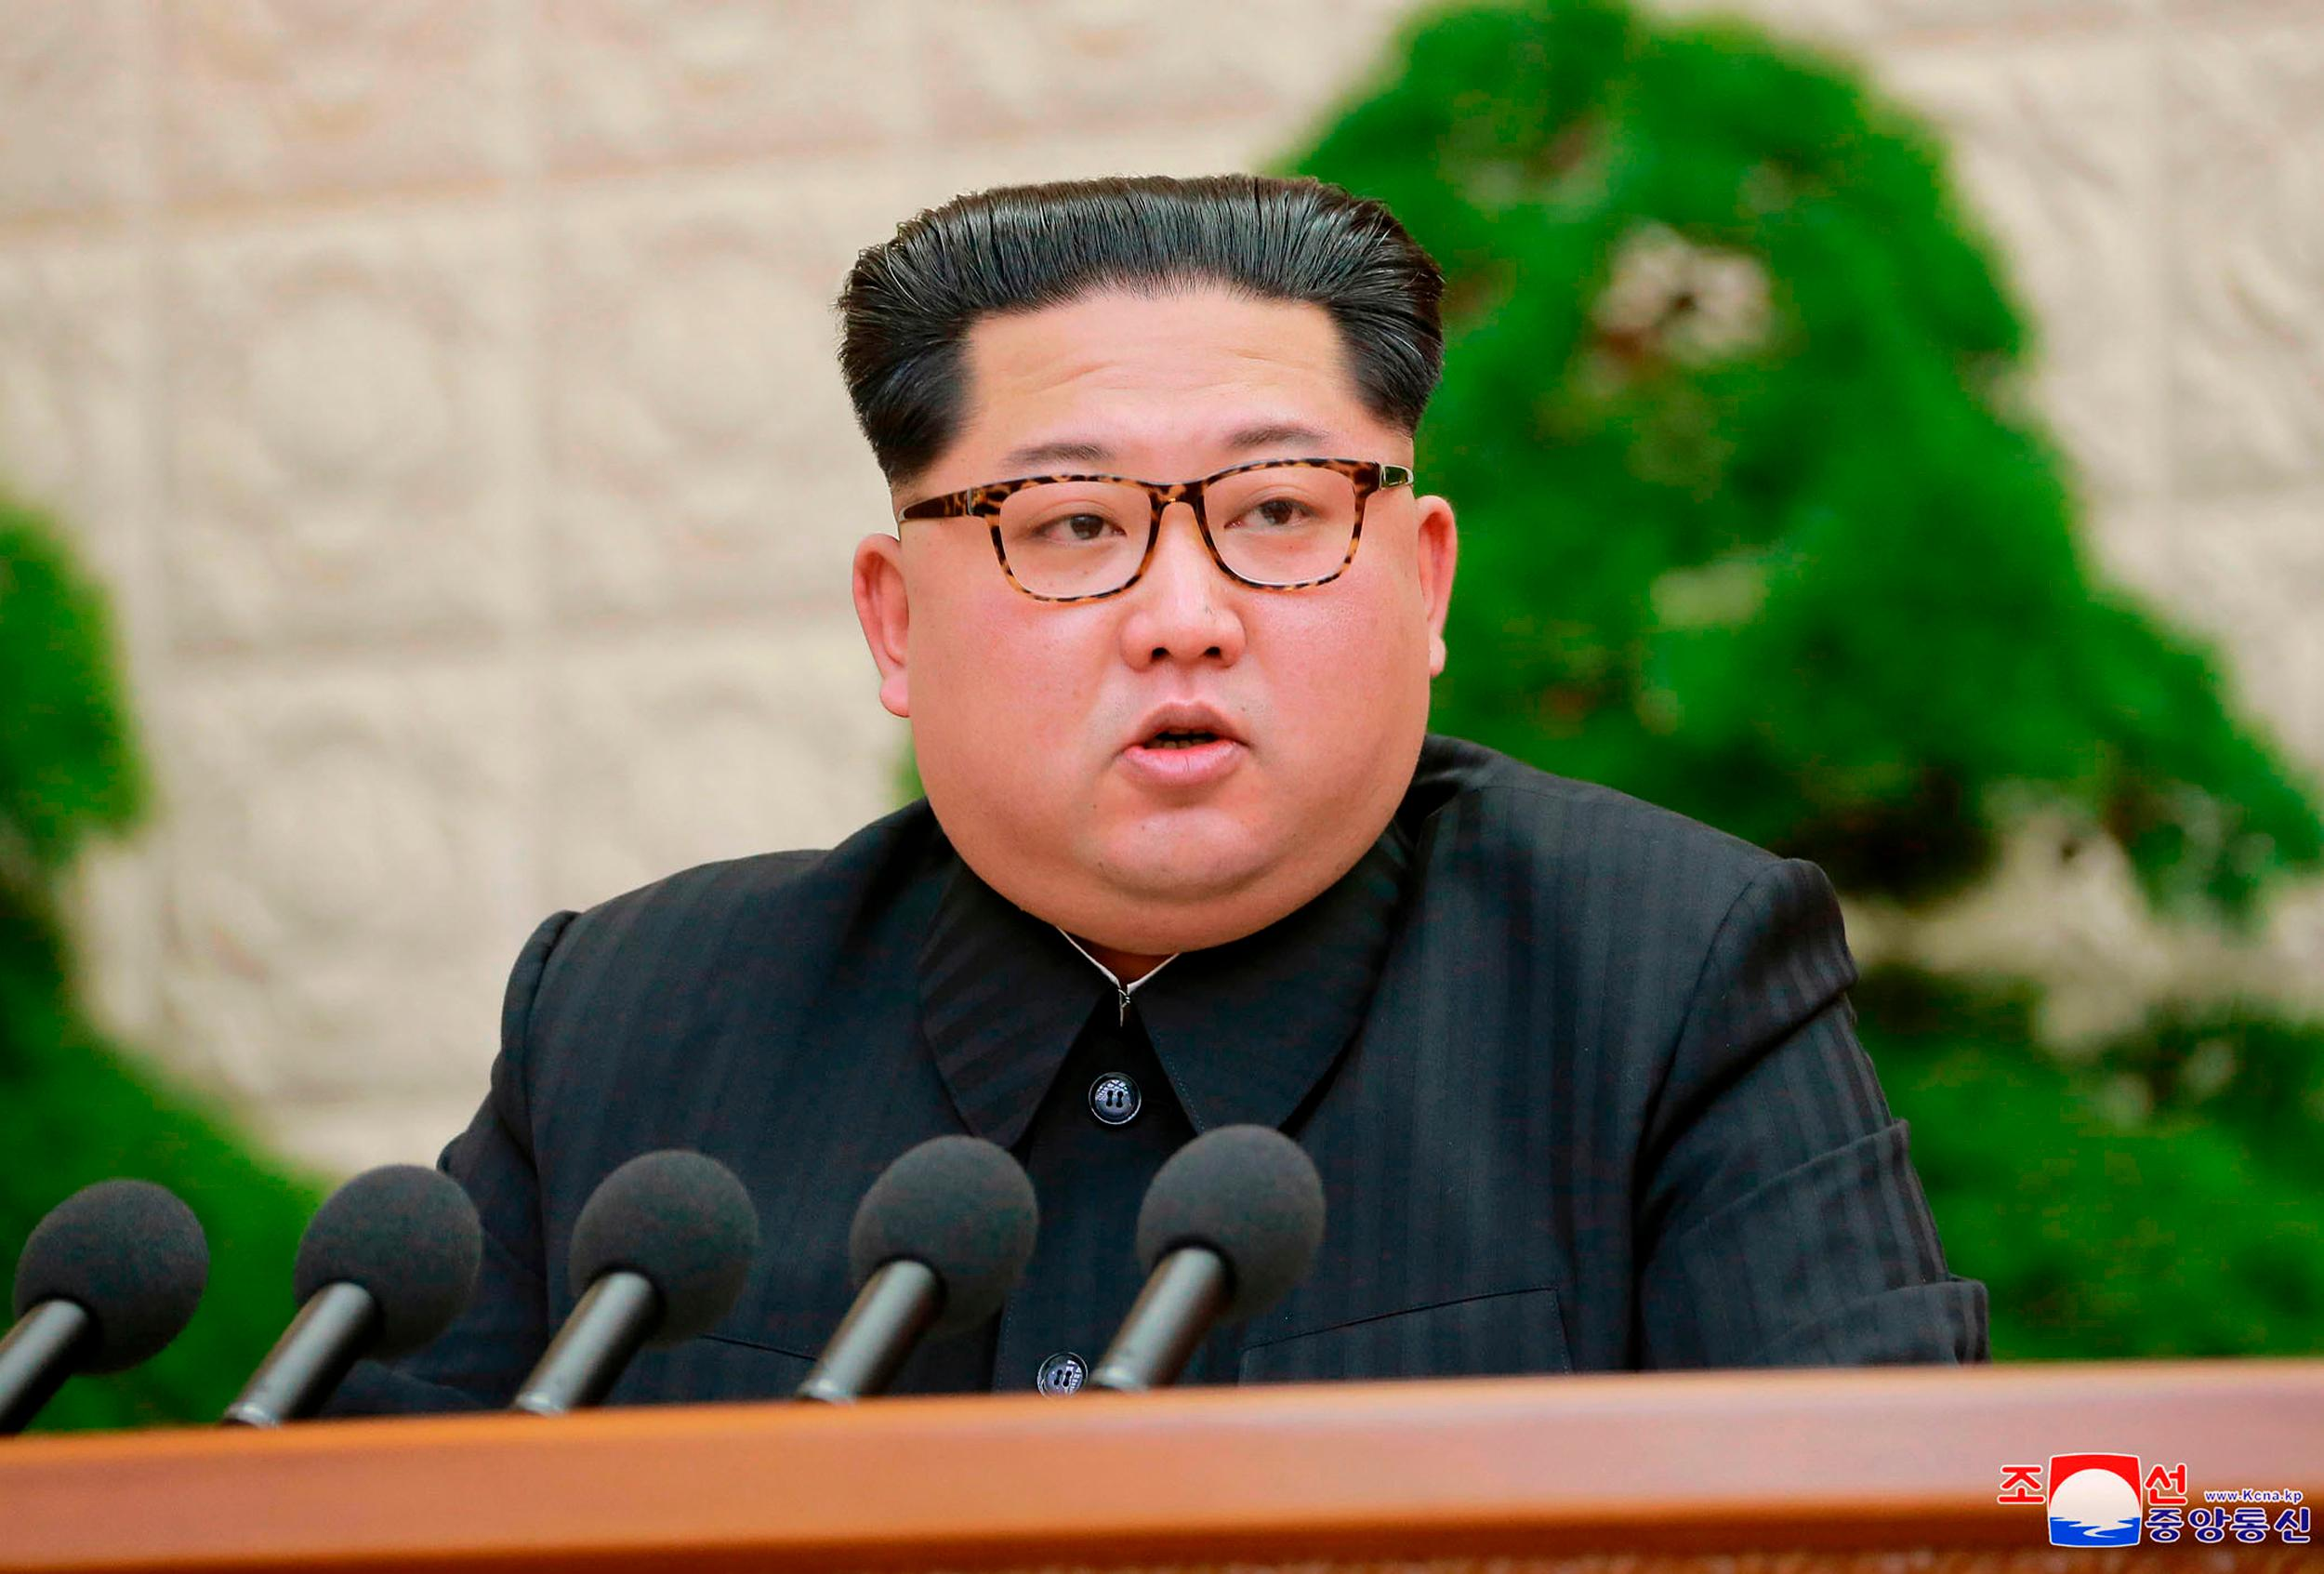 "FILE - In this Friday, April 20, 2018, photo provided by the North Korean government, North Korean leader Kim Jong Un speaks during a meeting of the Central Committee of the Workers' Party of Korea, in Pyongyang, North Korea. North Korea said Saturday, April 21, 2017 it has suspended nuclear and long-range missile tests and plans to close its nuclear test site ahead of a new round of negotiations with South Korea and the United States. There was no clear indication in the North's announcement if it would be willing to deal away its arsenal. Independent journalists were not given access to cover the event depicted in this image distributed by the North Korean government. The content of this image is as provided and cannot be independently verified. Korean language watermark on image as provided by source reads: ""KCNA"" which is the abbreviation for Korean Central News Agency. (Korean Central News Agency/Korea News Service via AP, File)"